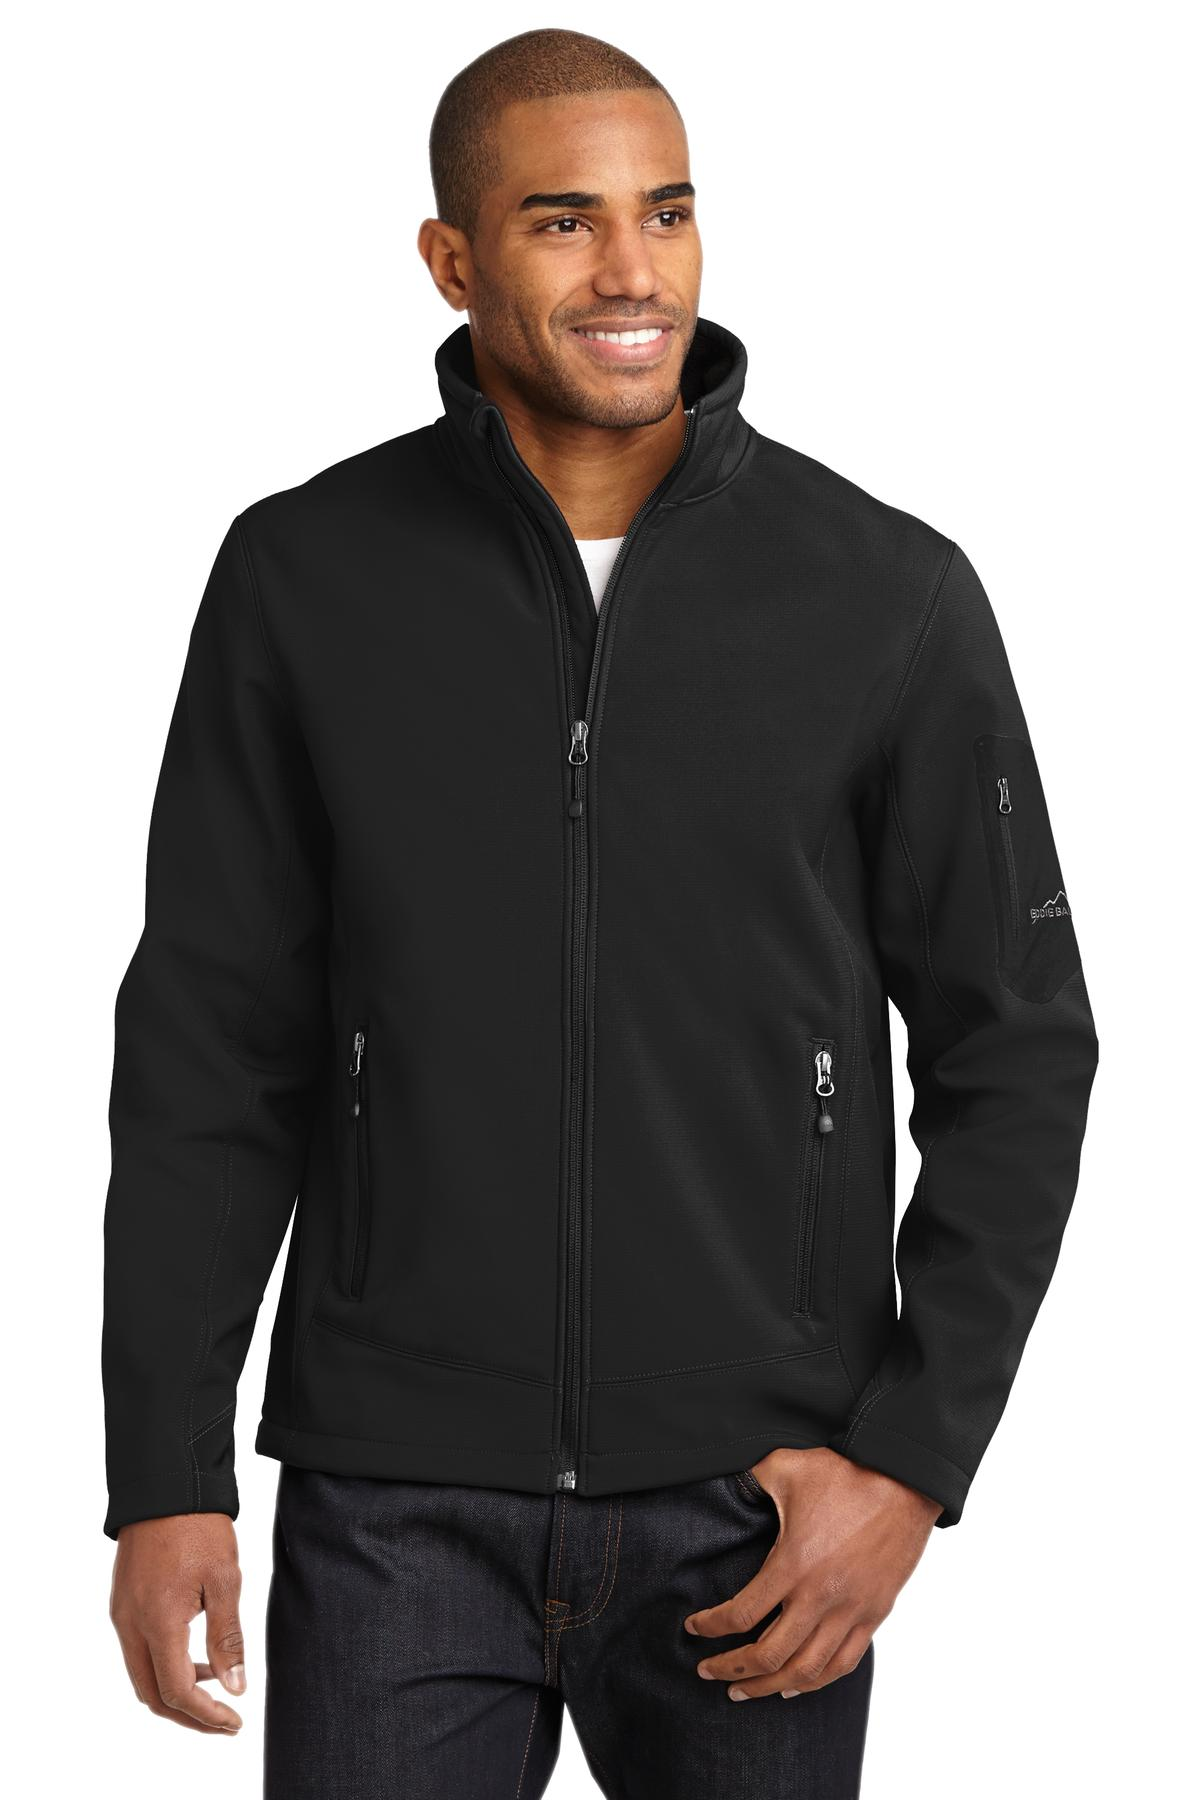 Eddie Bauer ®  Rugged Ripstop Soft Shell Jacket. EB534 - Black/ Black